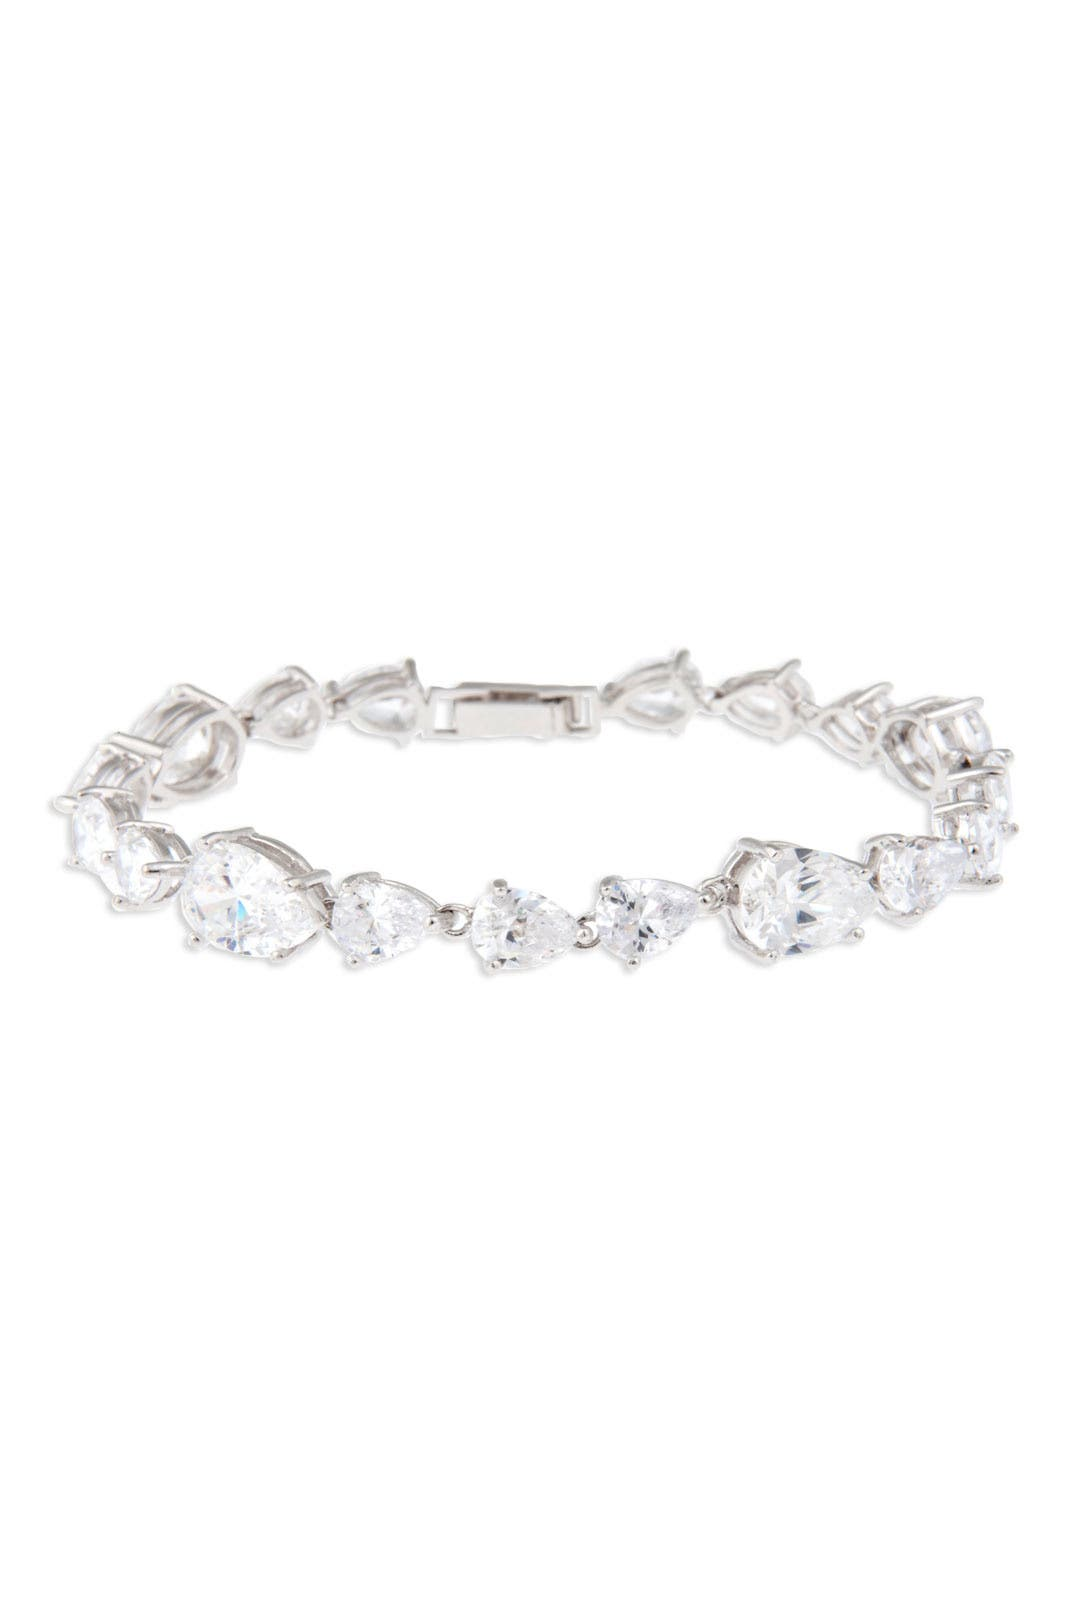 Crystal Craze Bracelet by Crislu